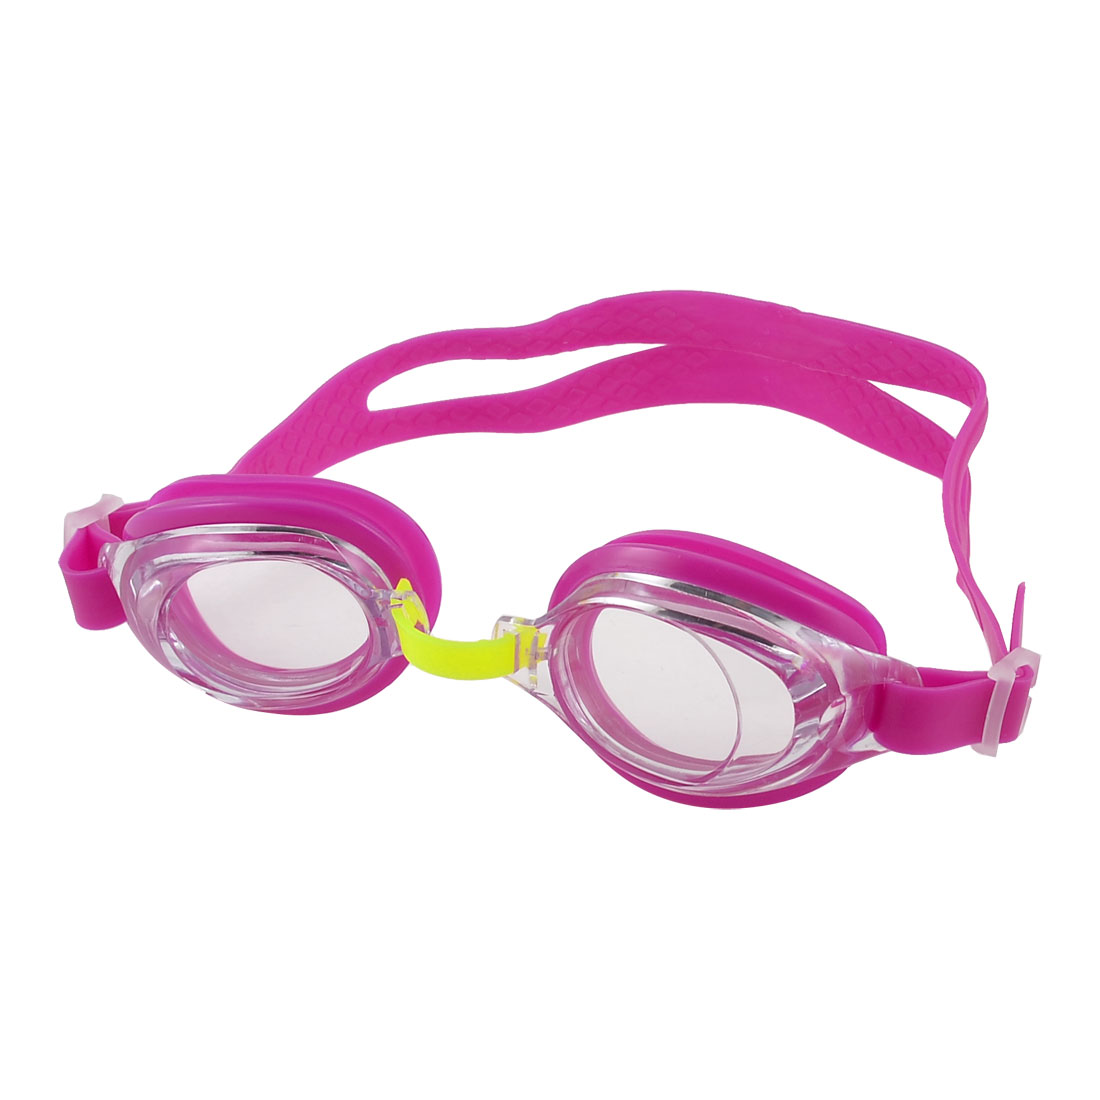 Children Fuchsia Silicone Strap Clear Lens Swimming Goggles Swim Glasses Eyewear by